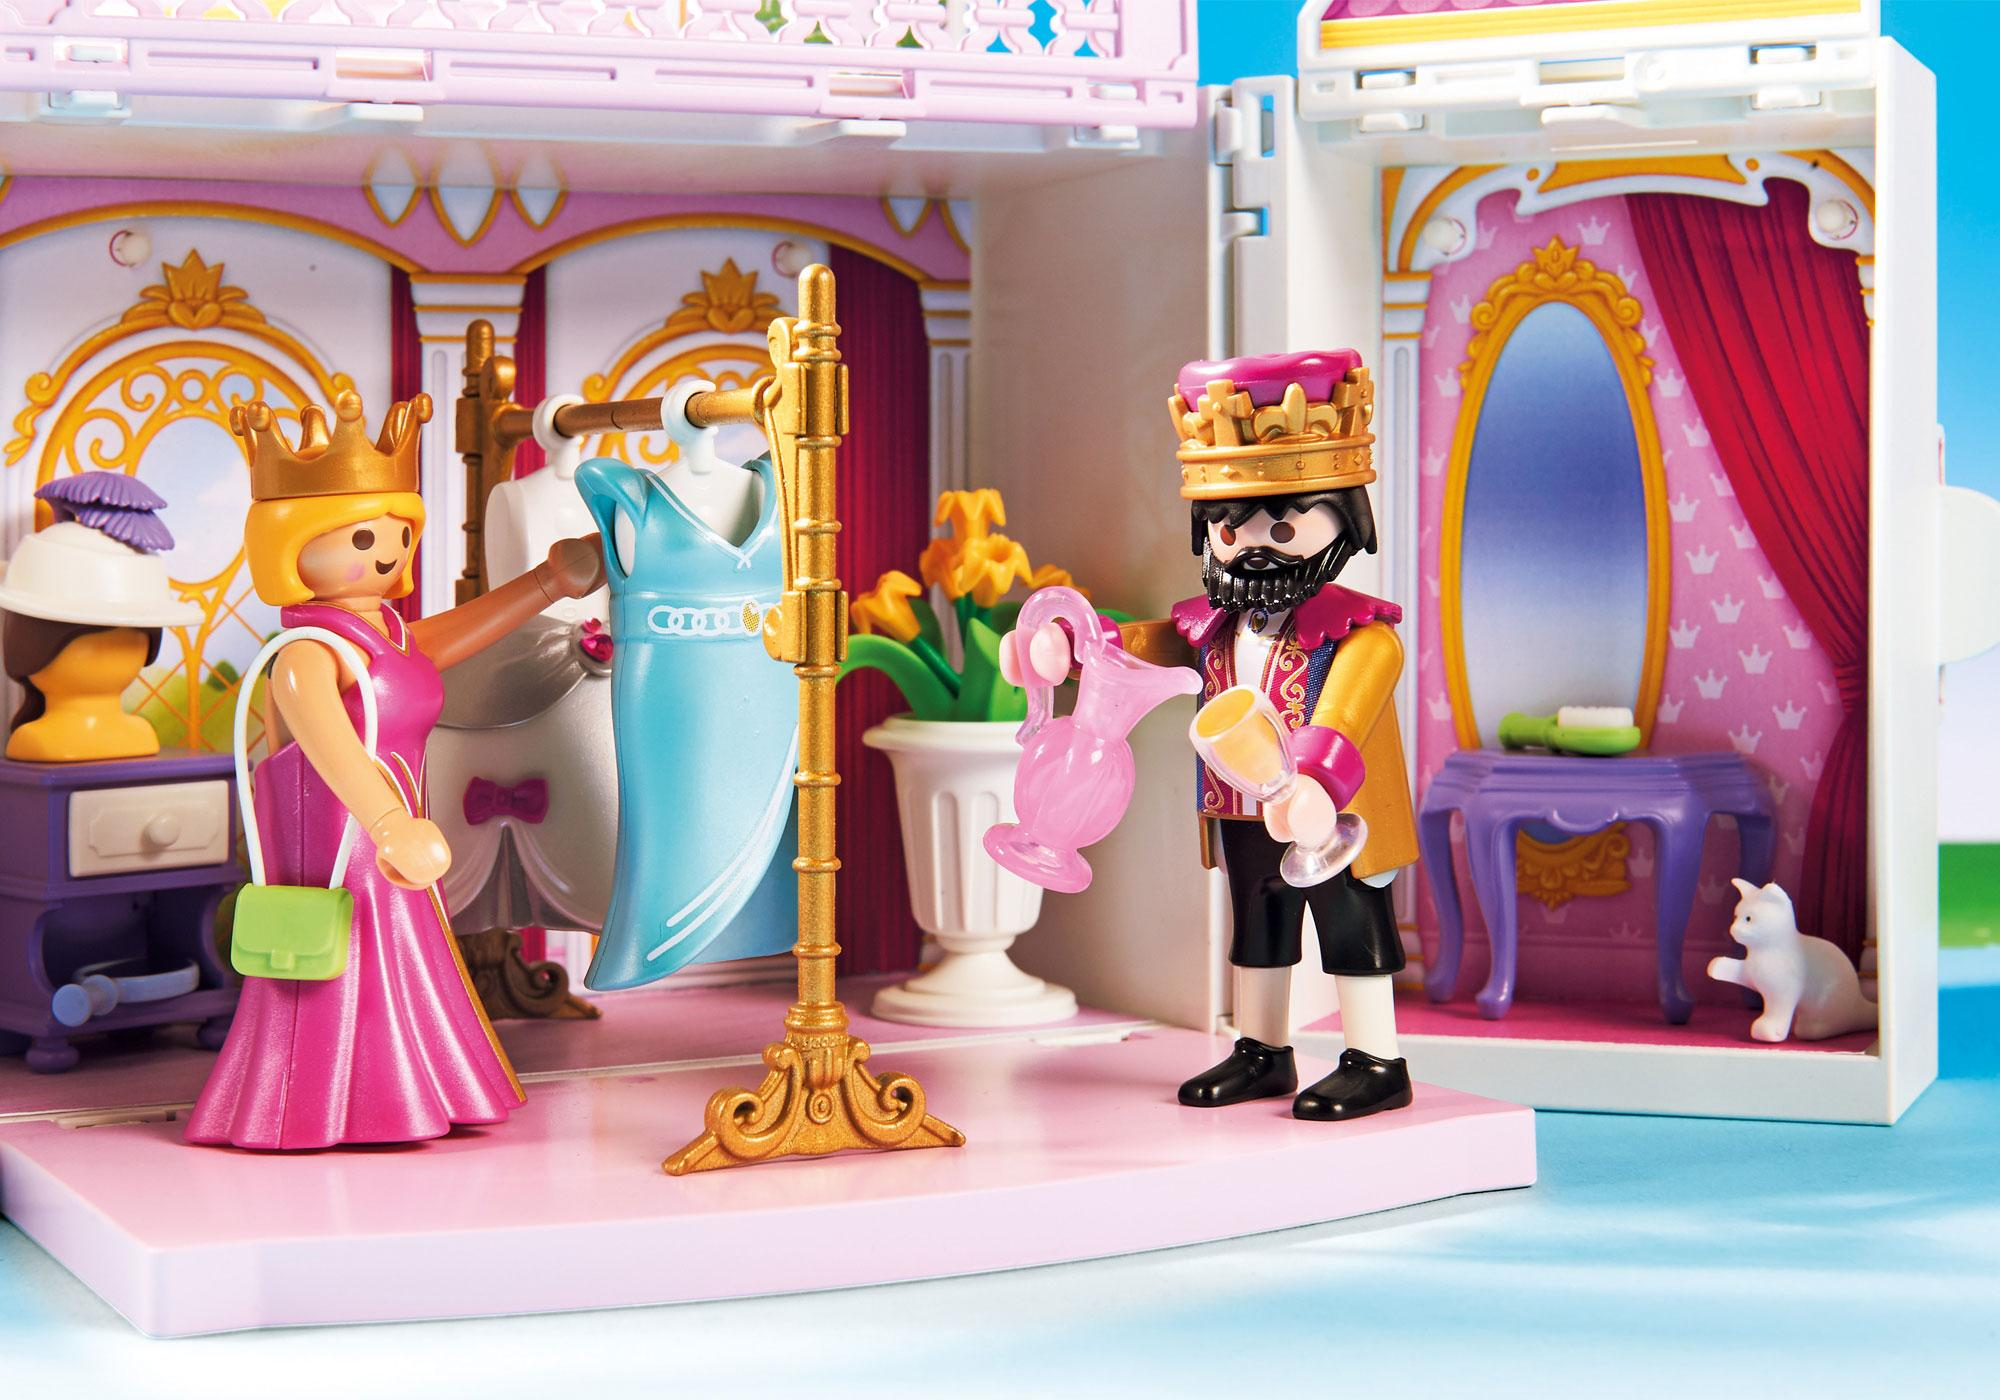 http://media.playmobil.com/i/playmobil/4898_product_extra1/My Secret Royal Palace Play Box